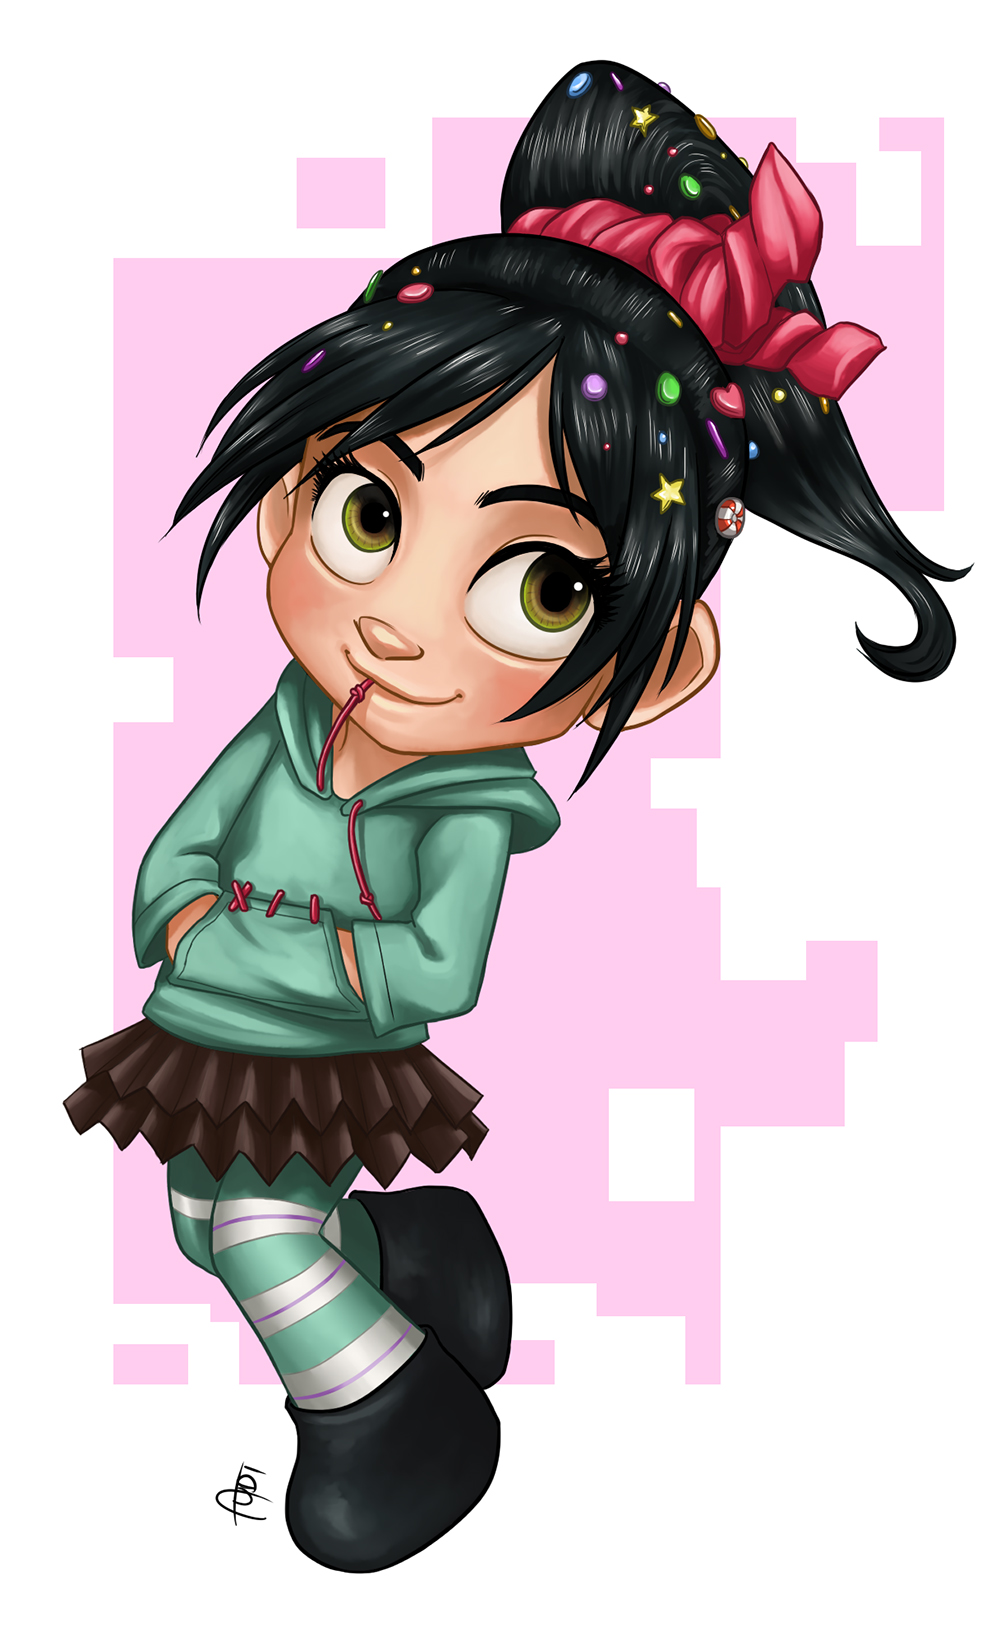 Wreck-It Ralph Vanellope